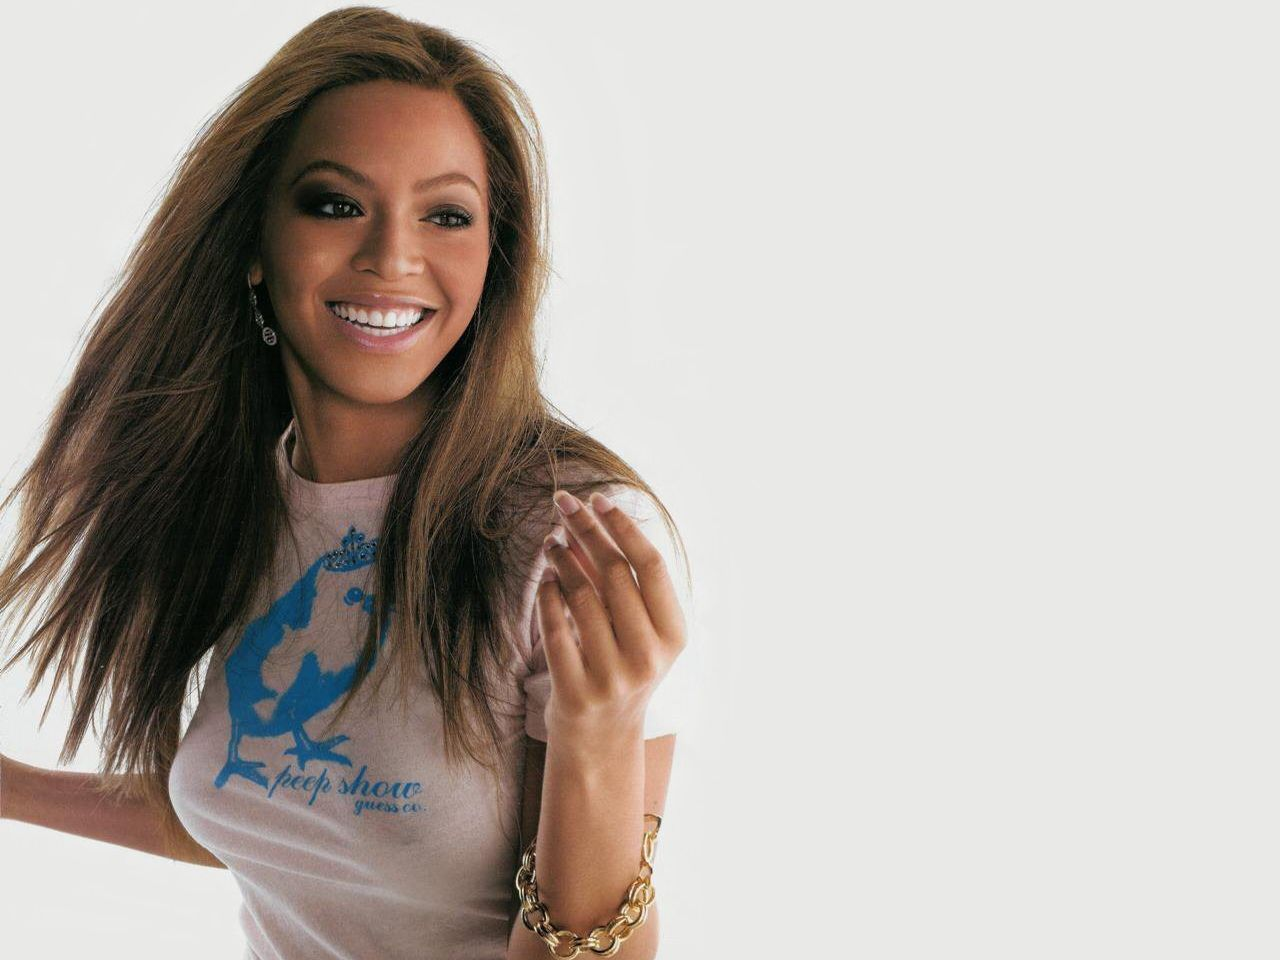 Beyonce Knowles Hot Pictures, Photo Gallery & Wallpapers: Hot Beyonce ... Beyonce Knowles